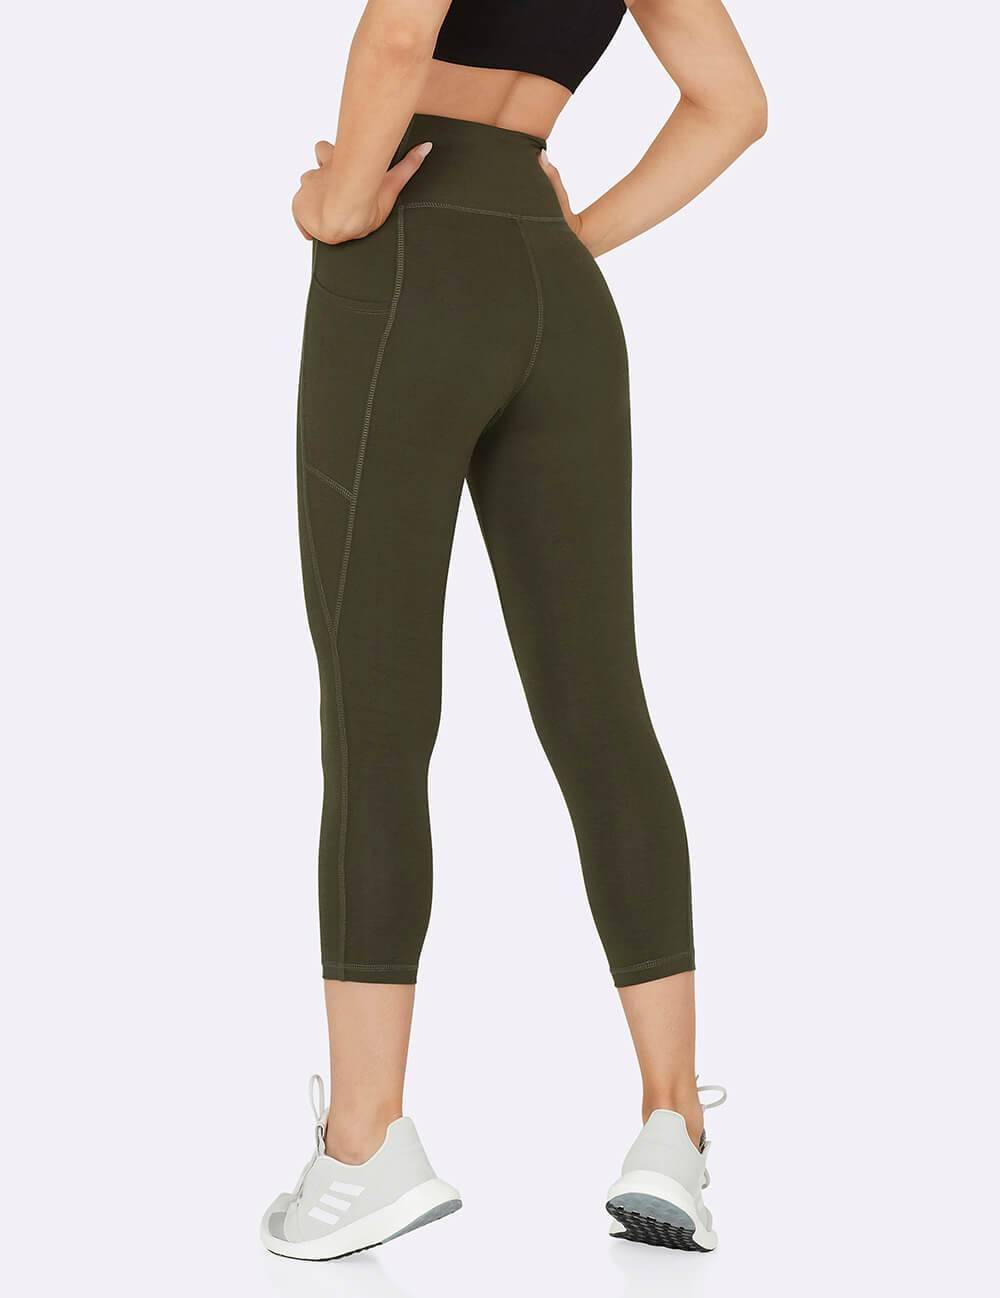 boody affordable gym leggings with pockets